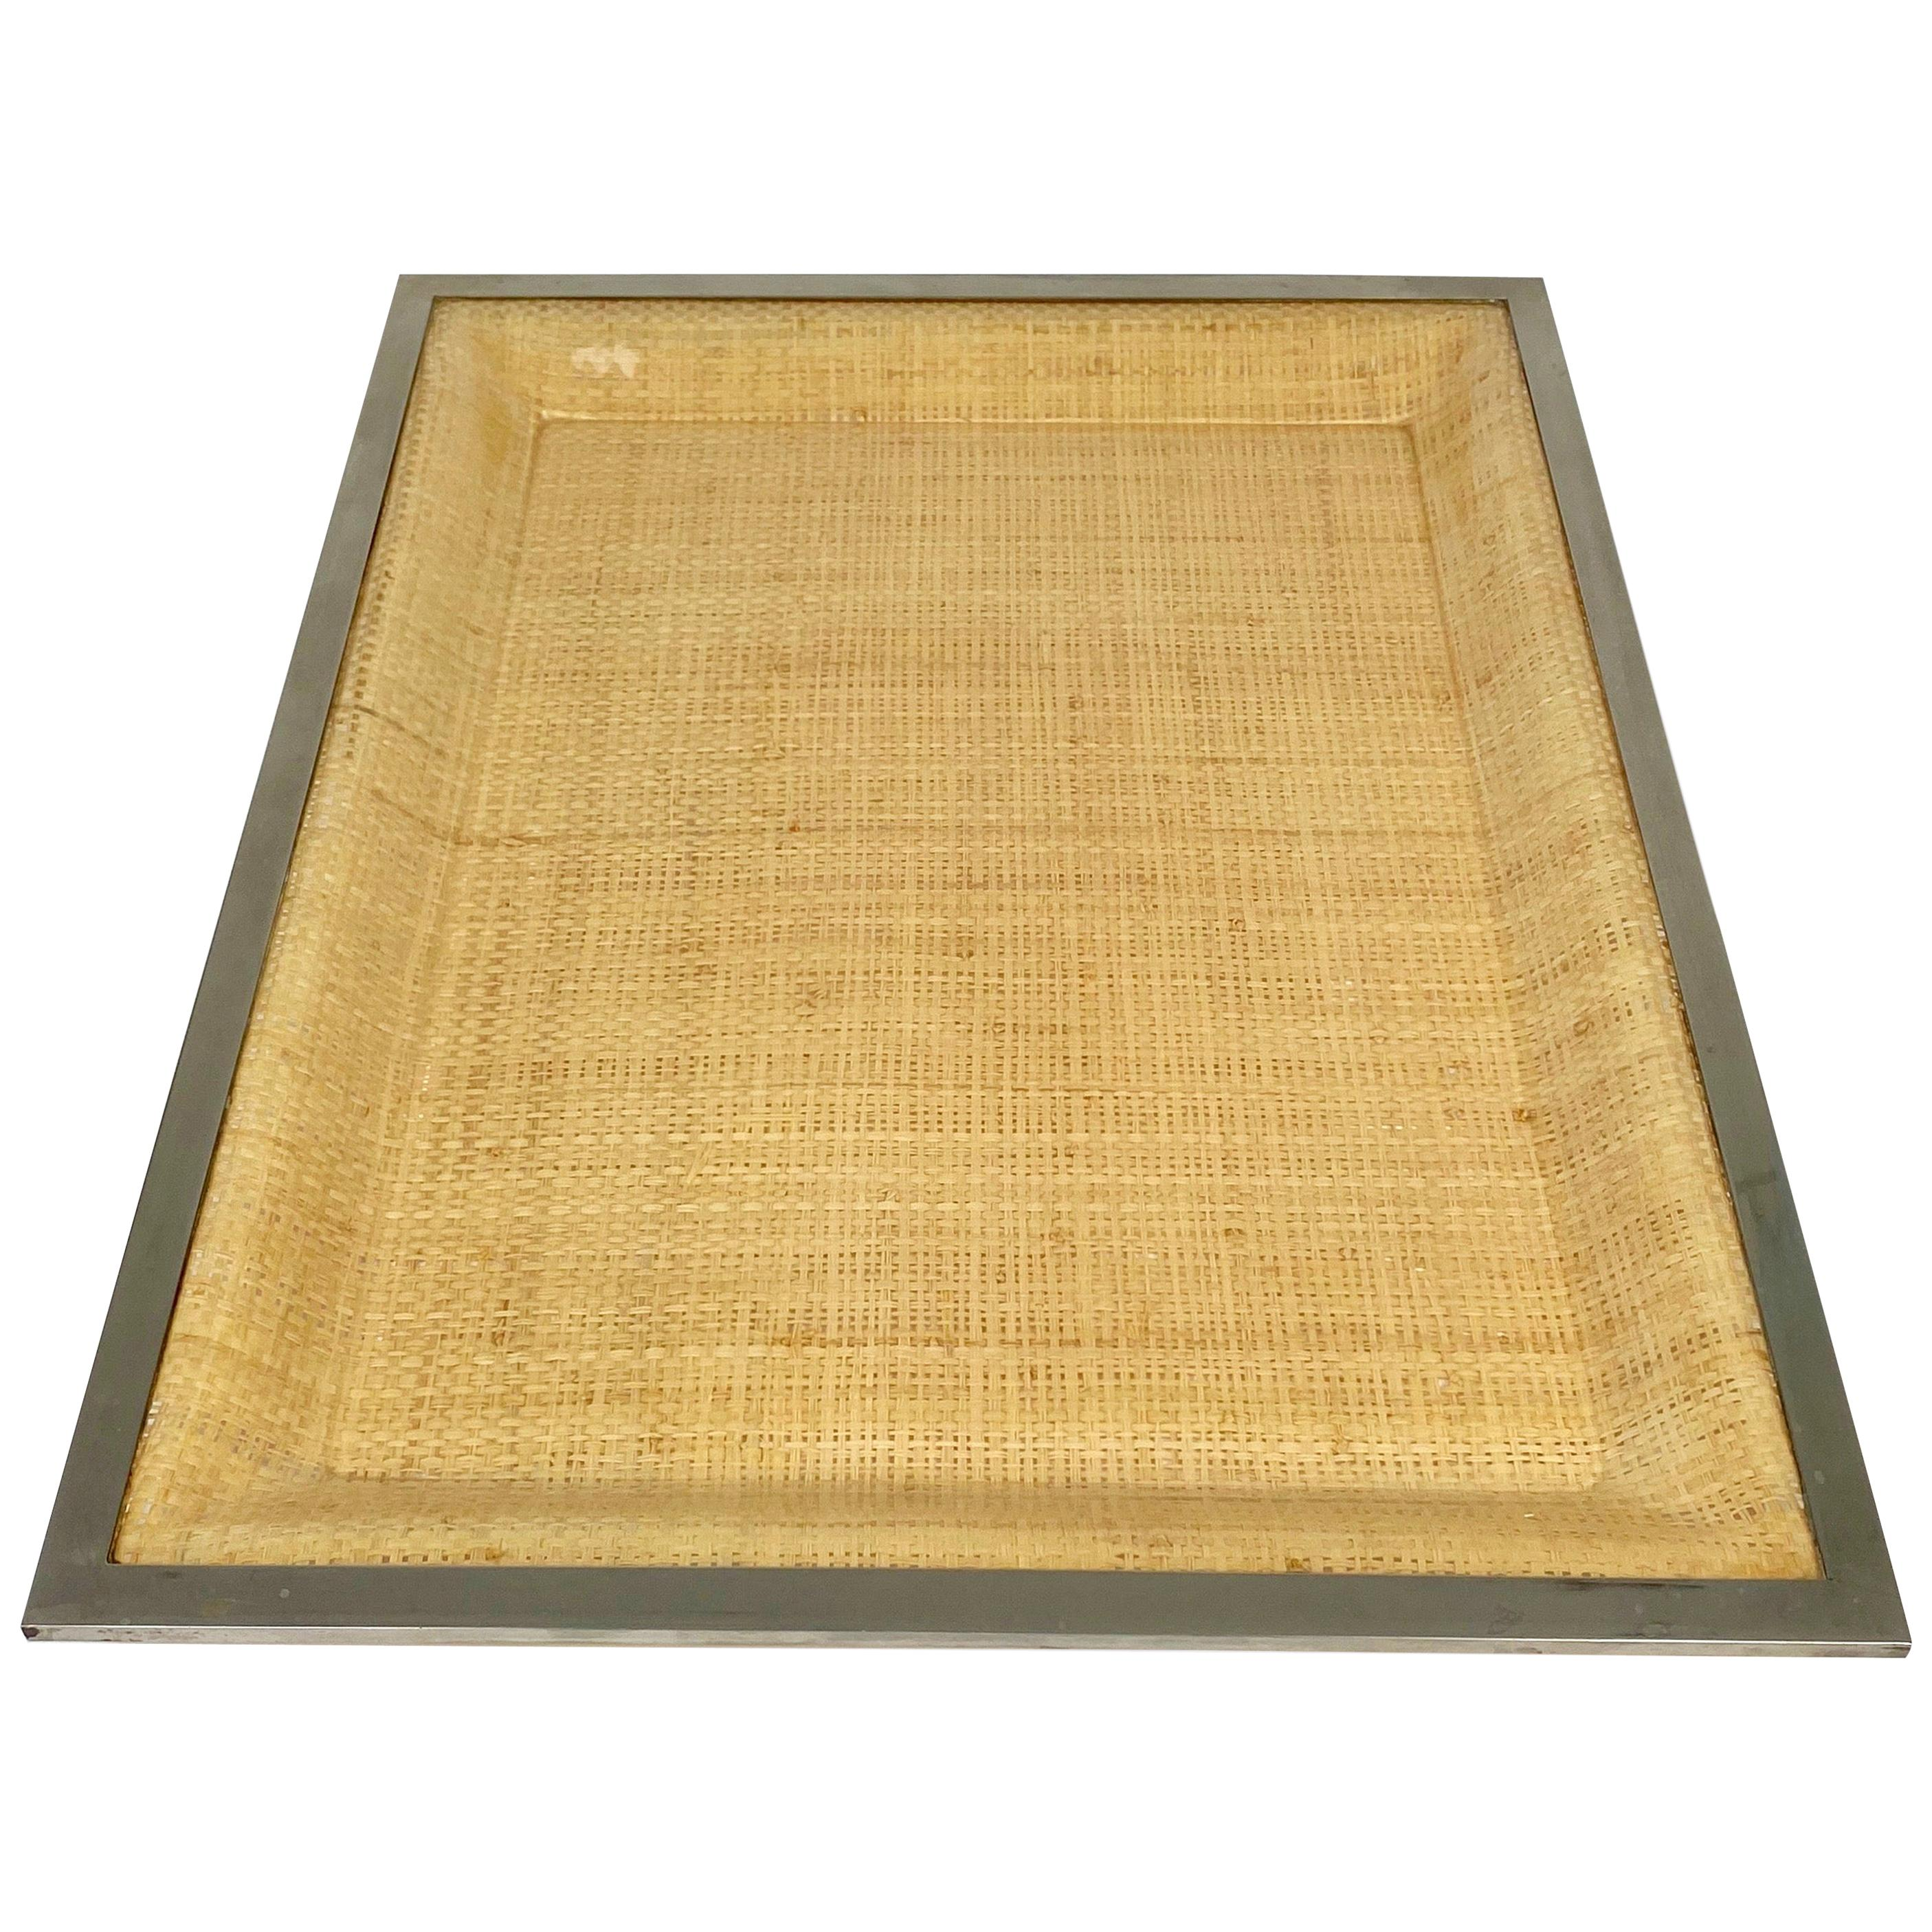 Wicker Lucite Serving Tray Metal Frame by Janetti, Italy, 1970s